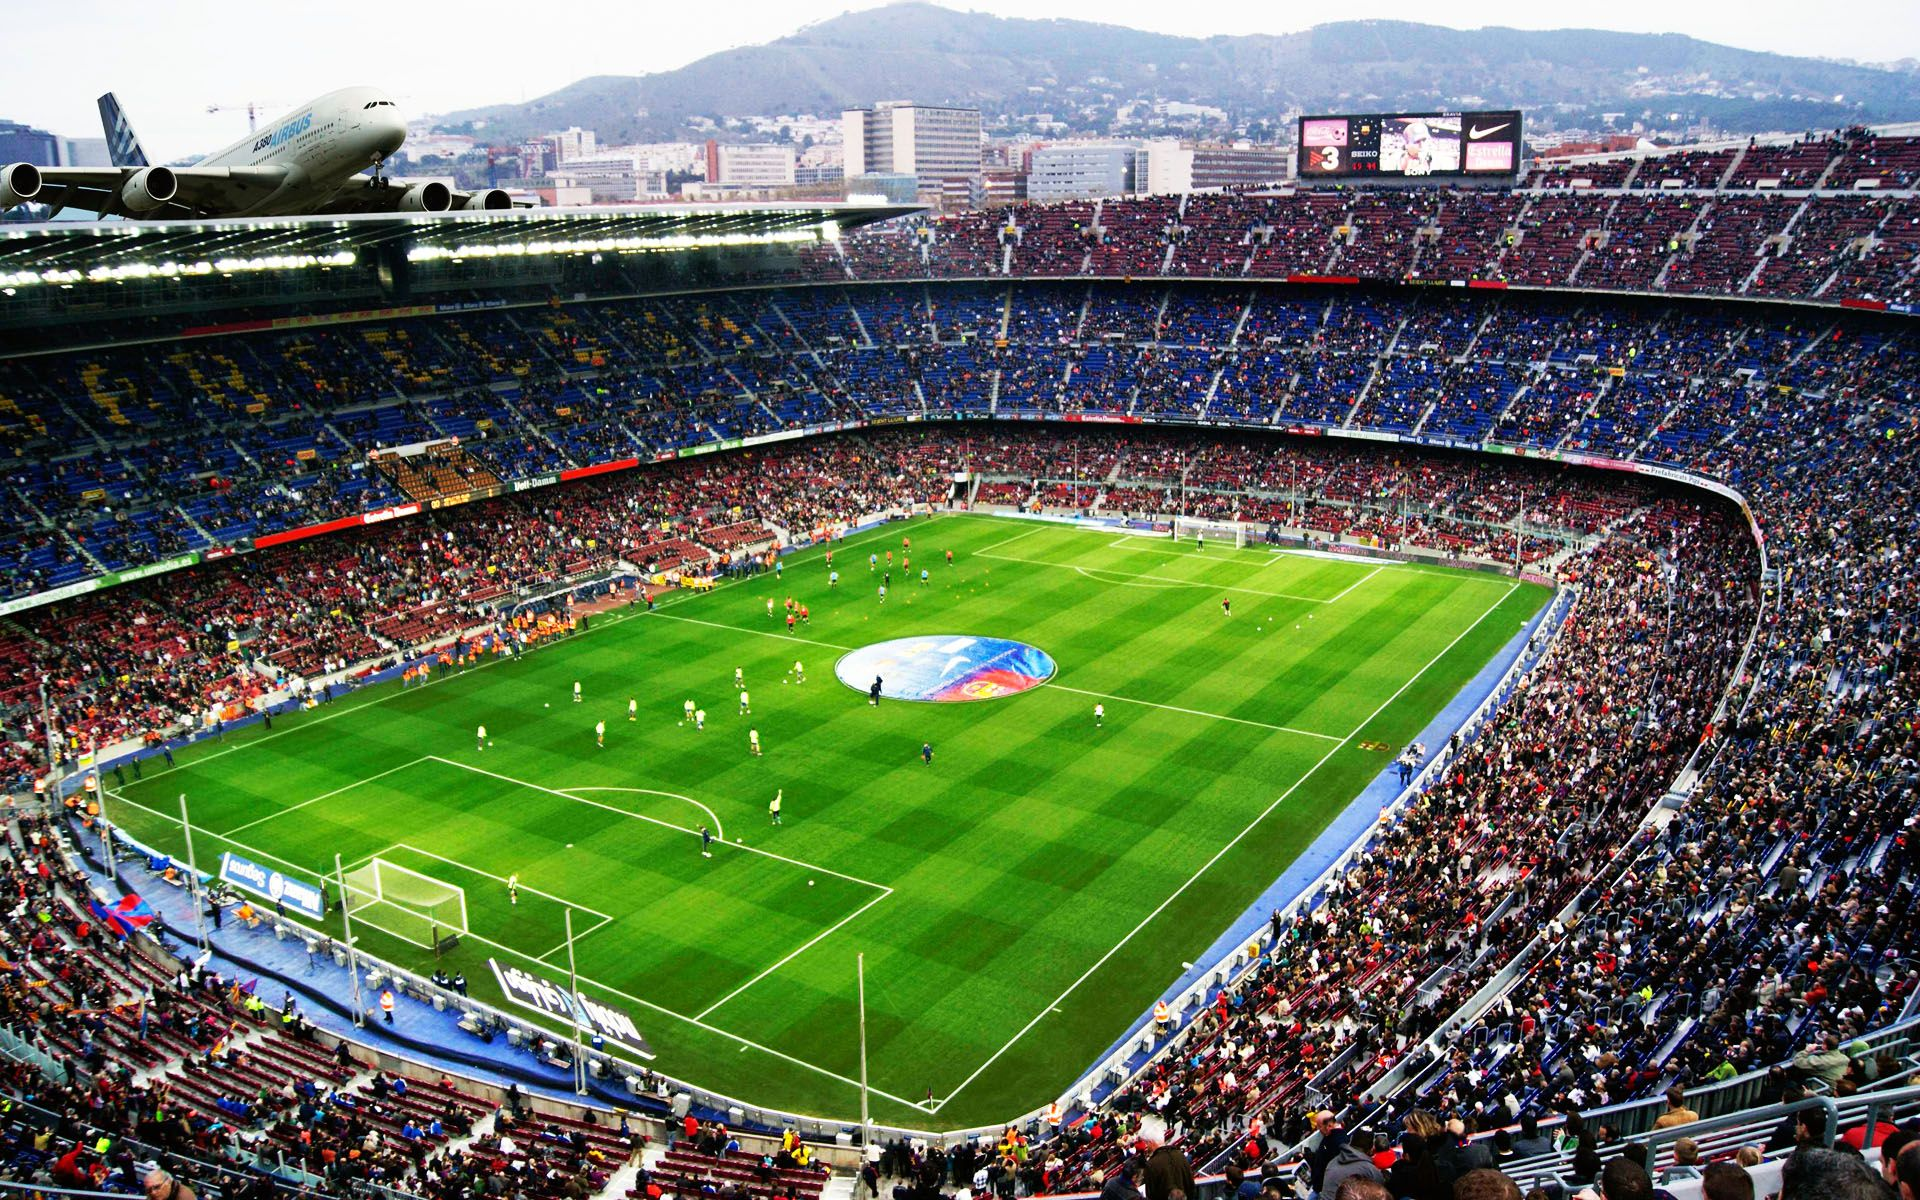 The Camp Nou seats and thus is the largest stadium in Europe